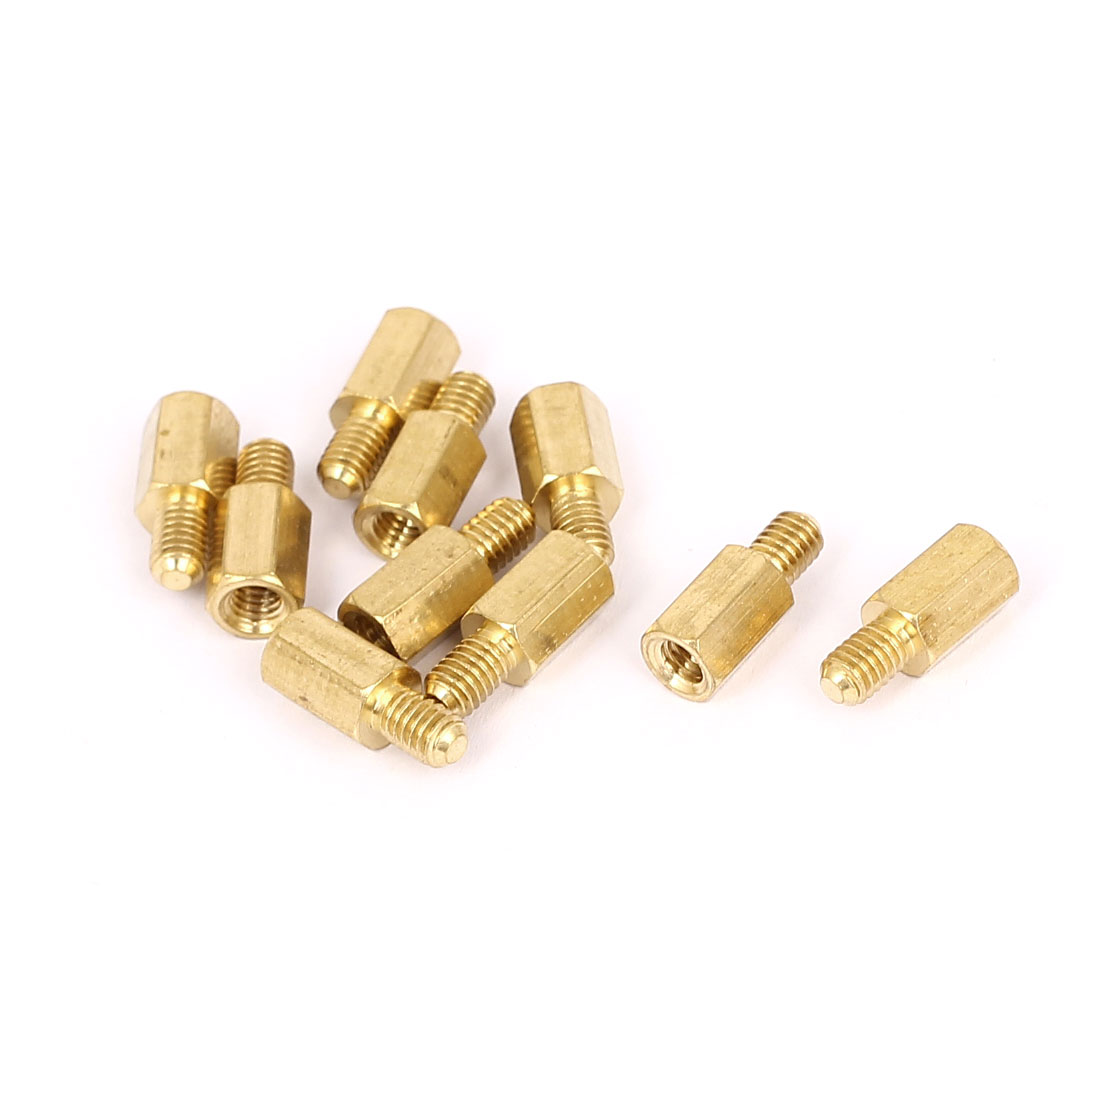 M4x9mm+6mm Male to Female Thread 0.7mm Pitch Brass Hex Standoff Spacer 10Pcs